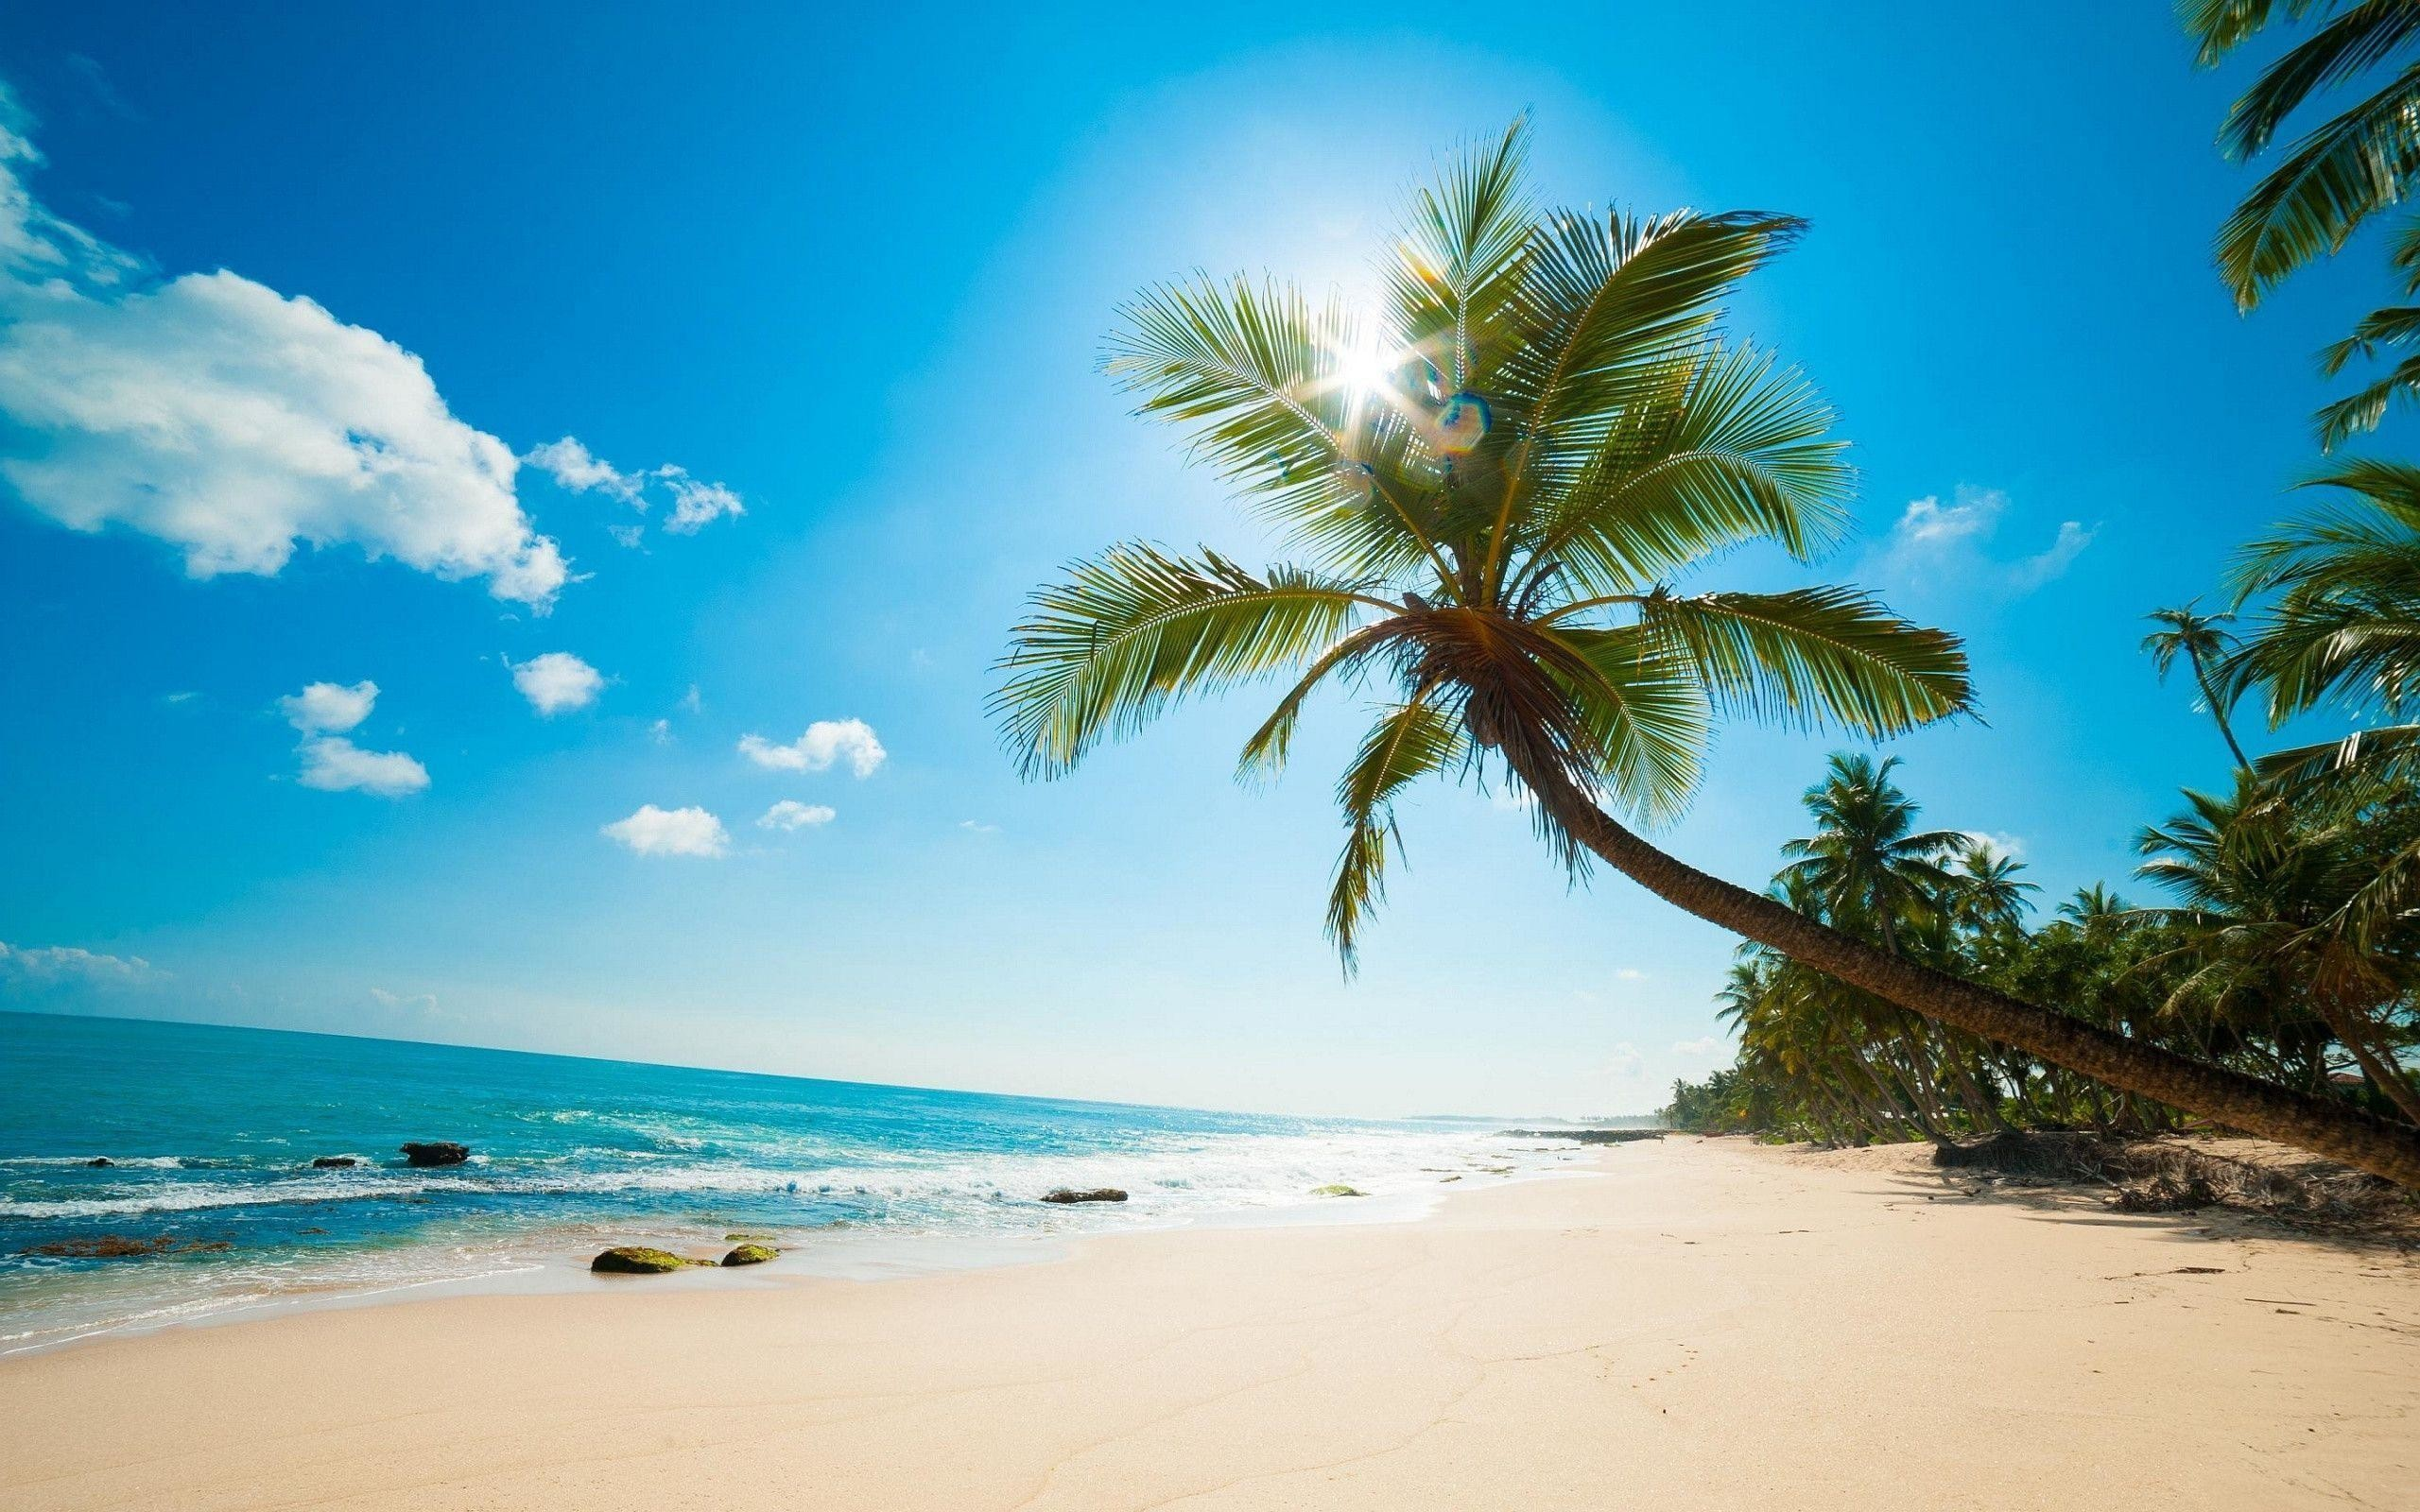 caribbean beach pictures wallpaper (70+ images)